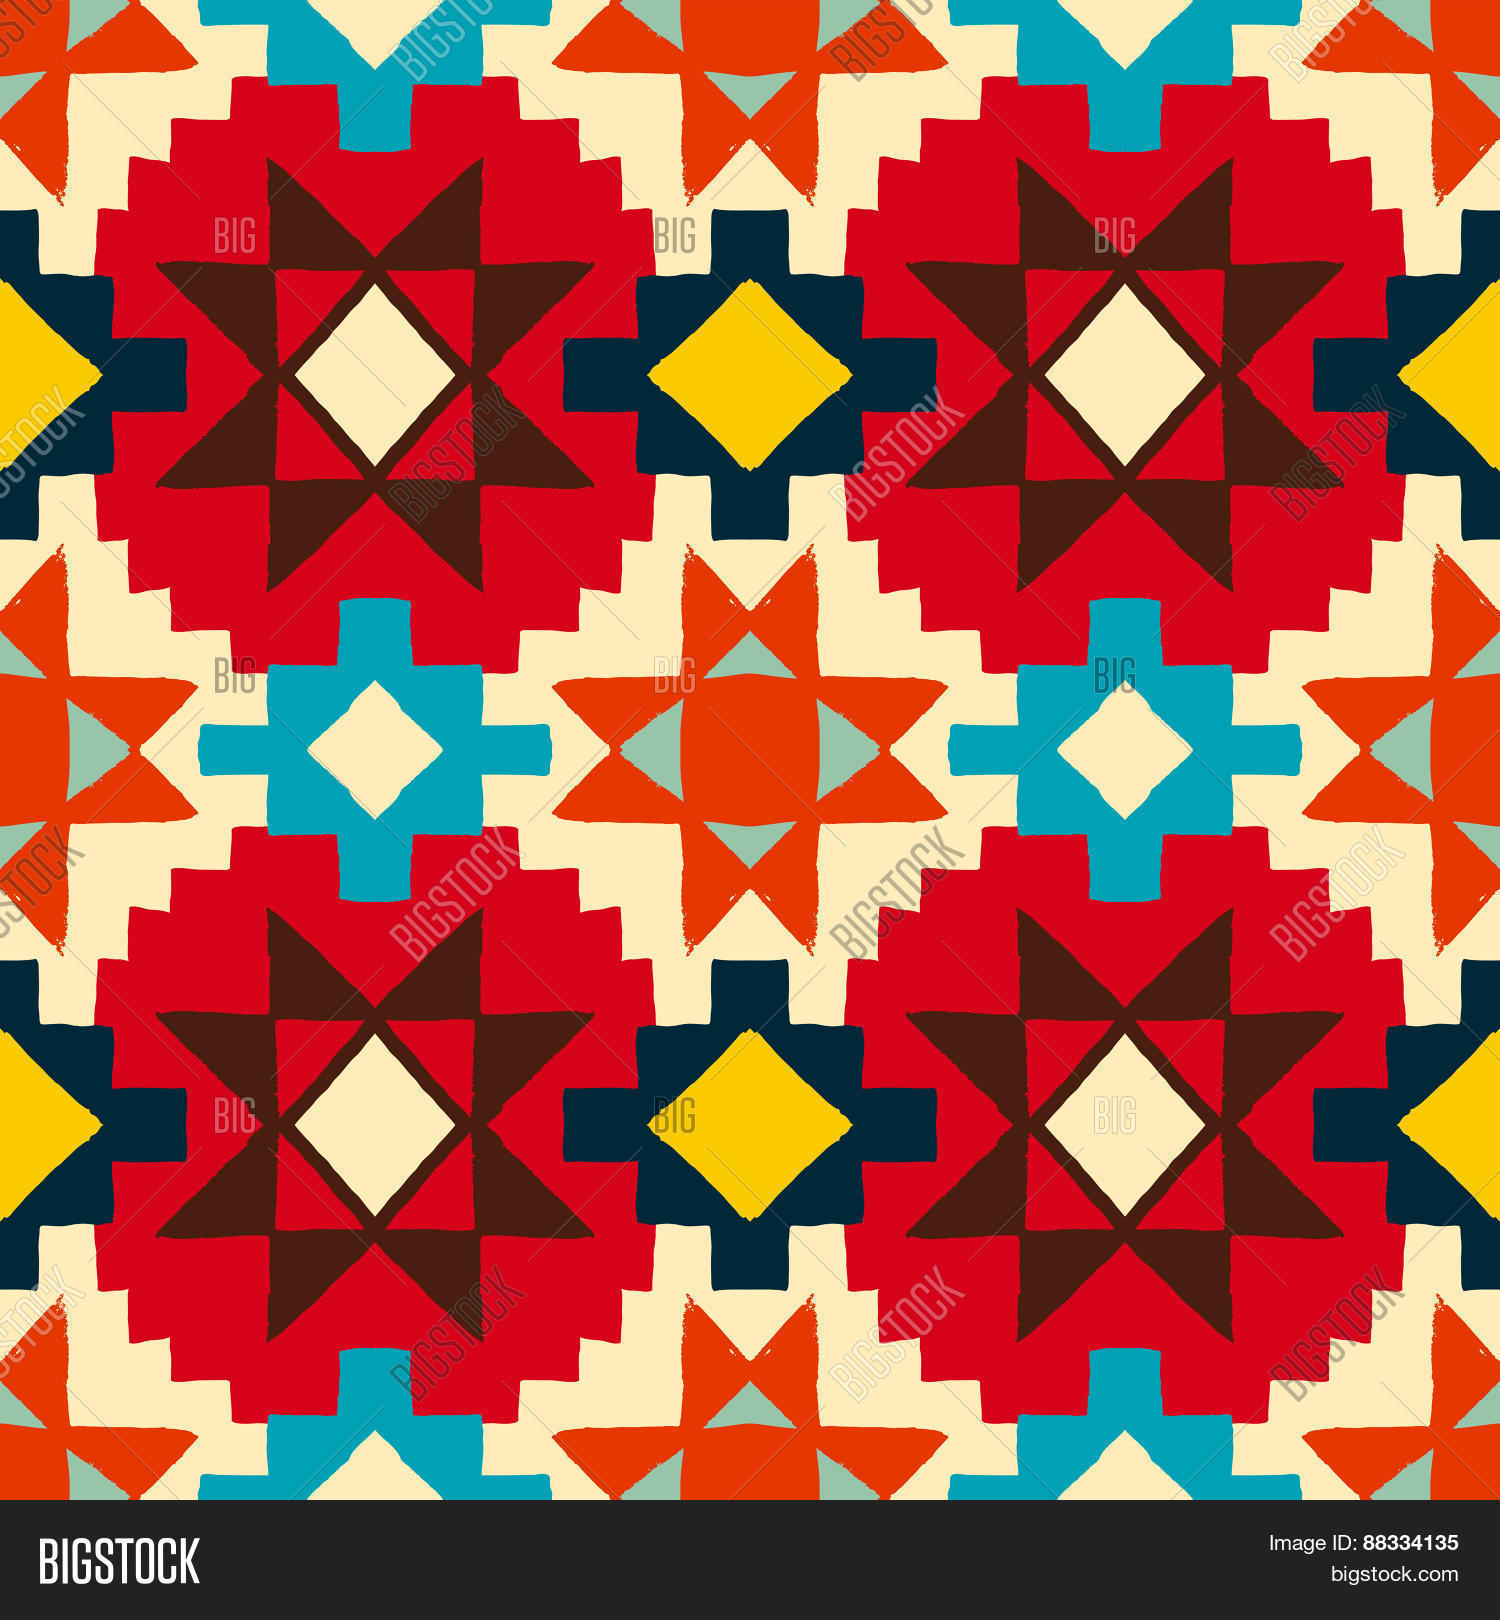 American Indian Designs Patterns